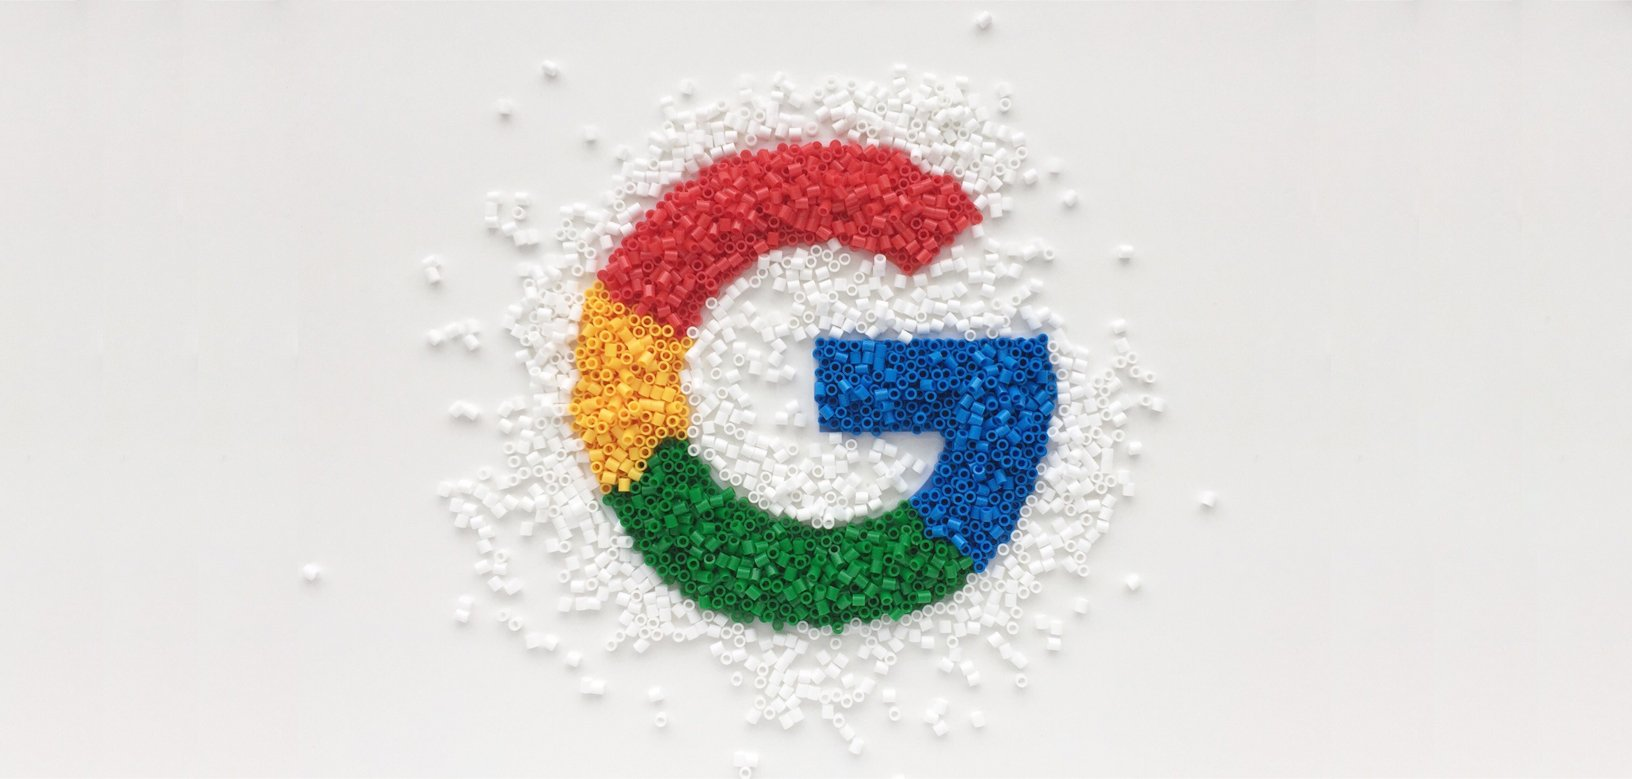 my-super-g-google-logo-made-from-pyssla_t20_NGEkzl copy